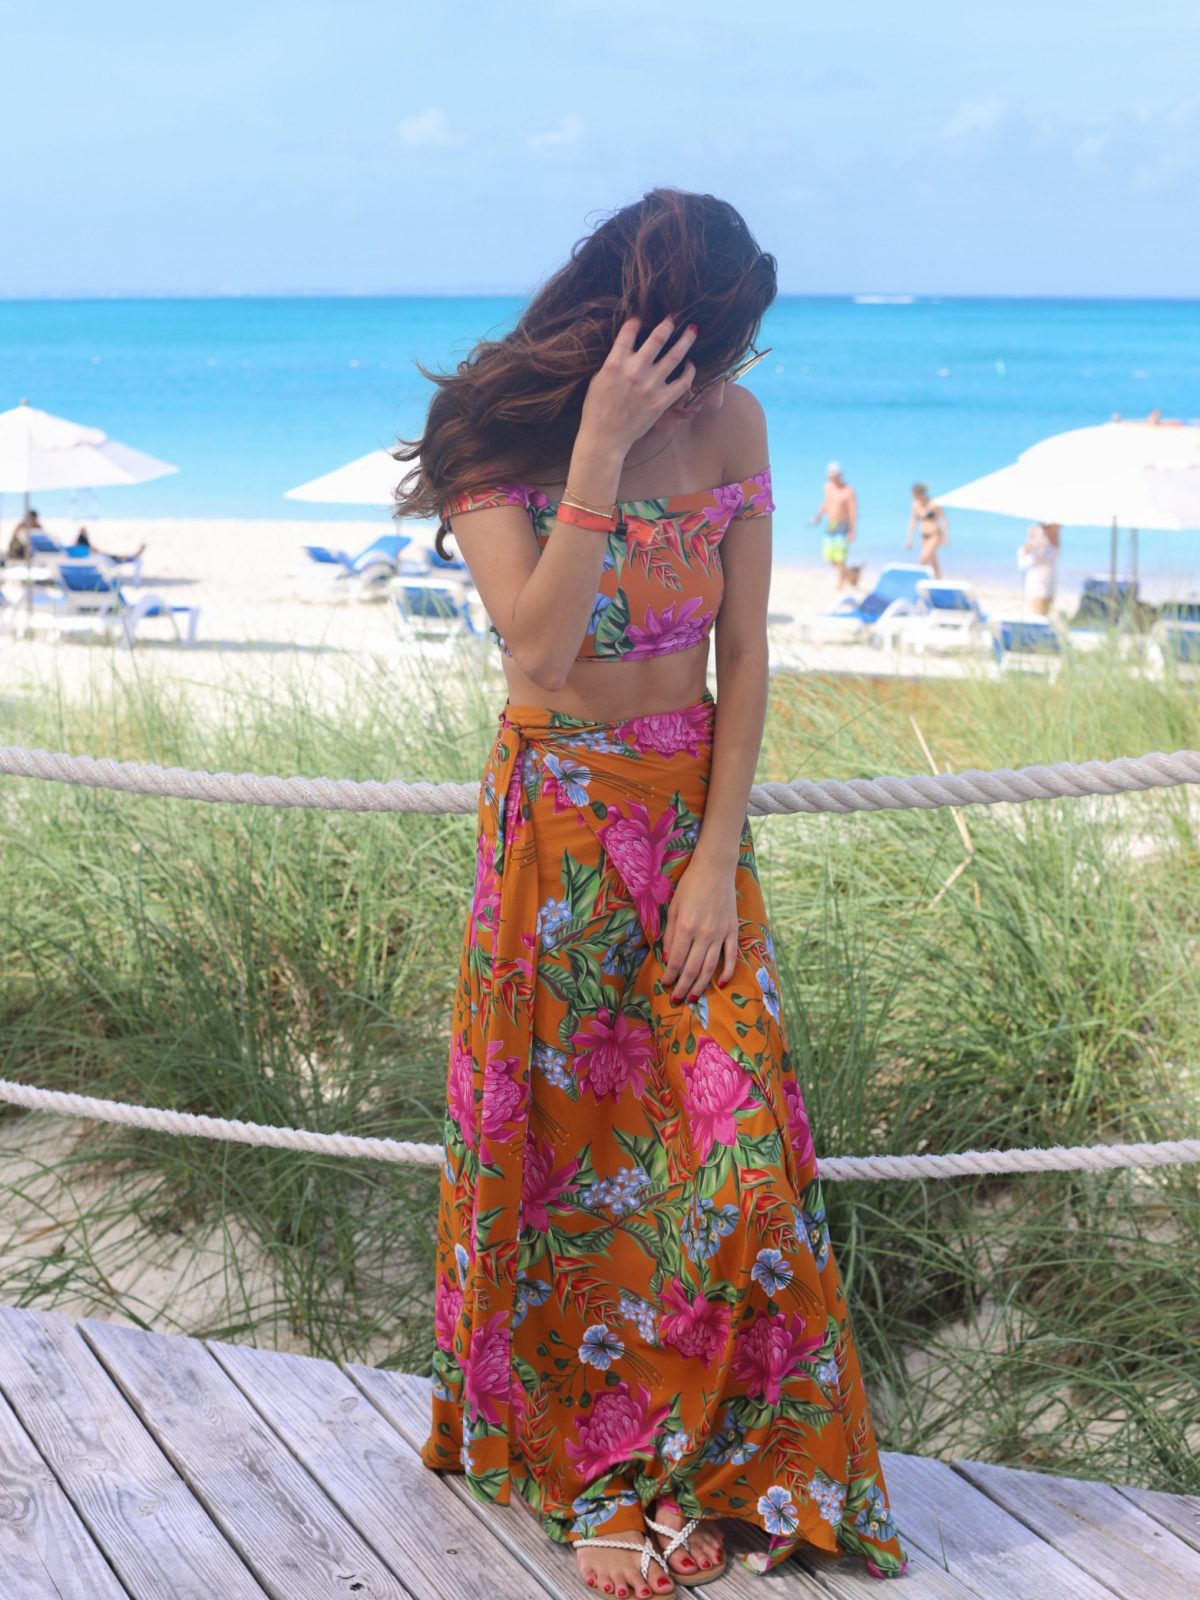 triya Saia Laço Amazon Flowers, triya Biquíni Top Cris Calcinha Fixa Up Amazon Flowers, matching set, resort wear, what to wear on an island vacation, turks and caicos